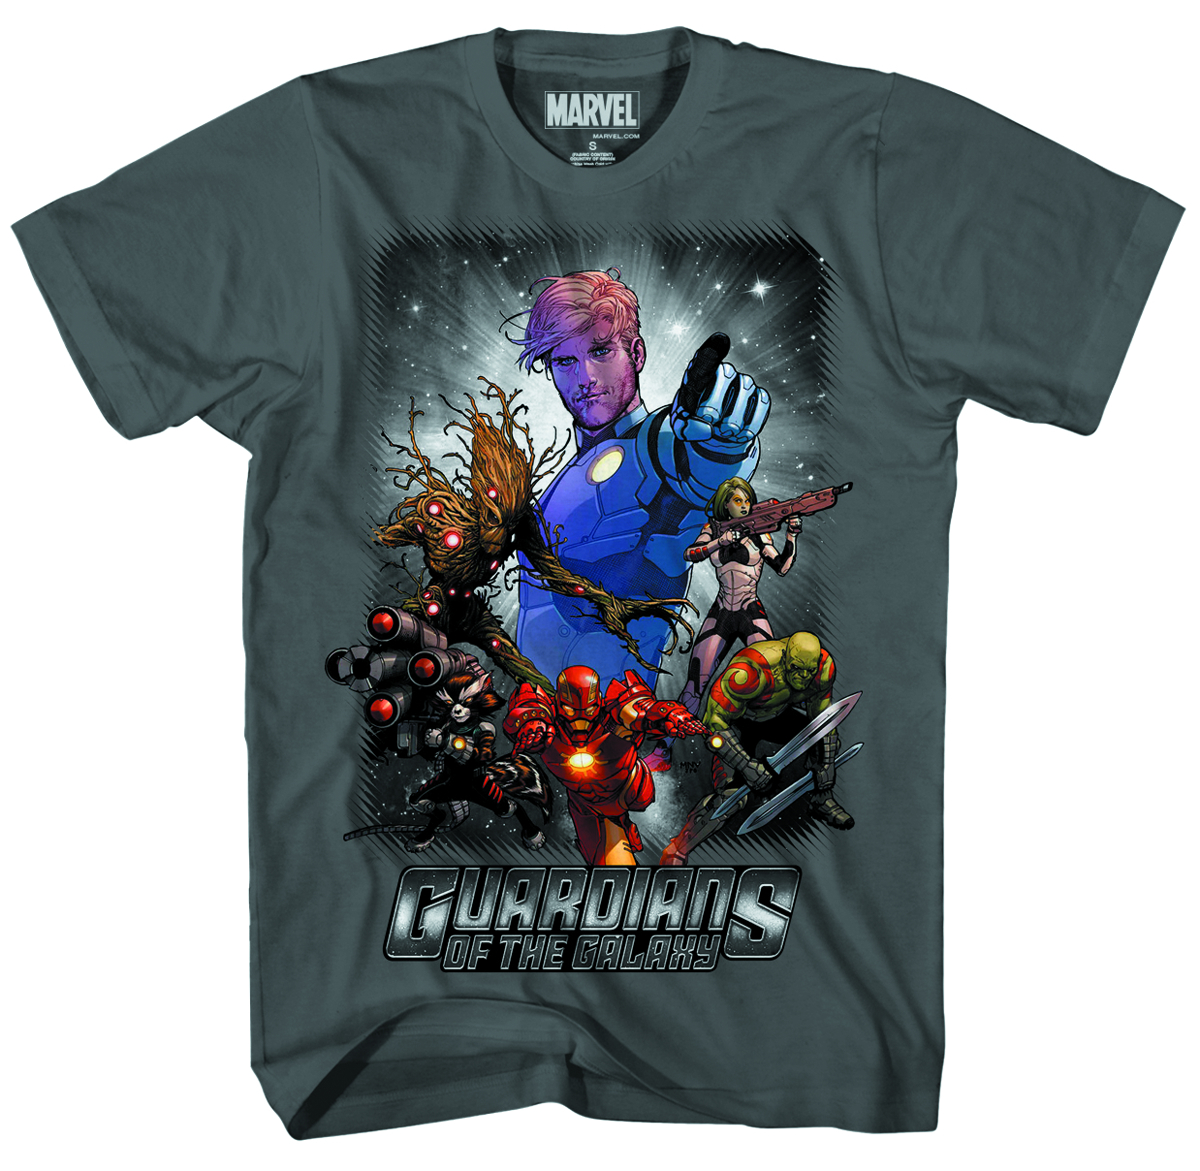 GOTG SPACE POLICE PX CHARCOAL T/S XL